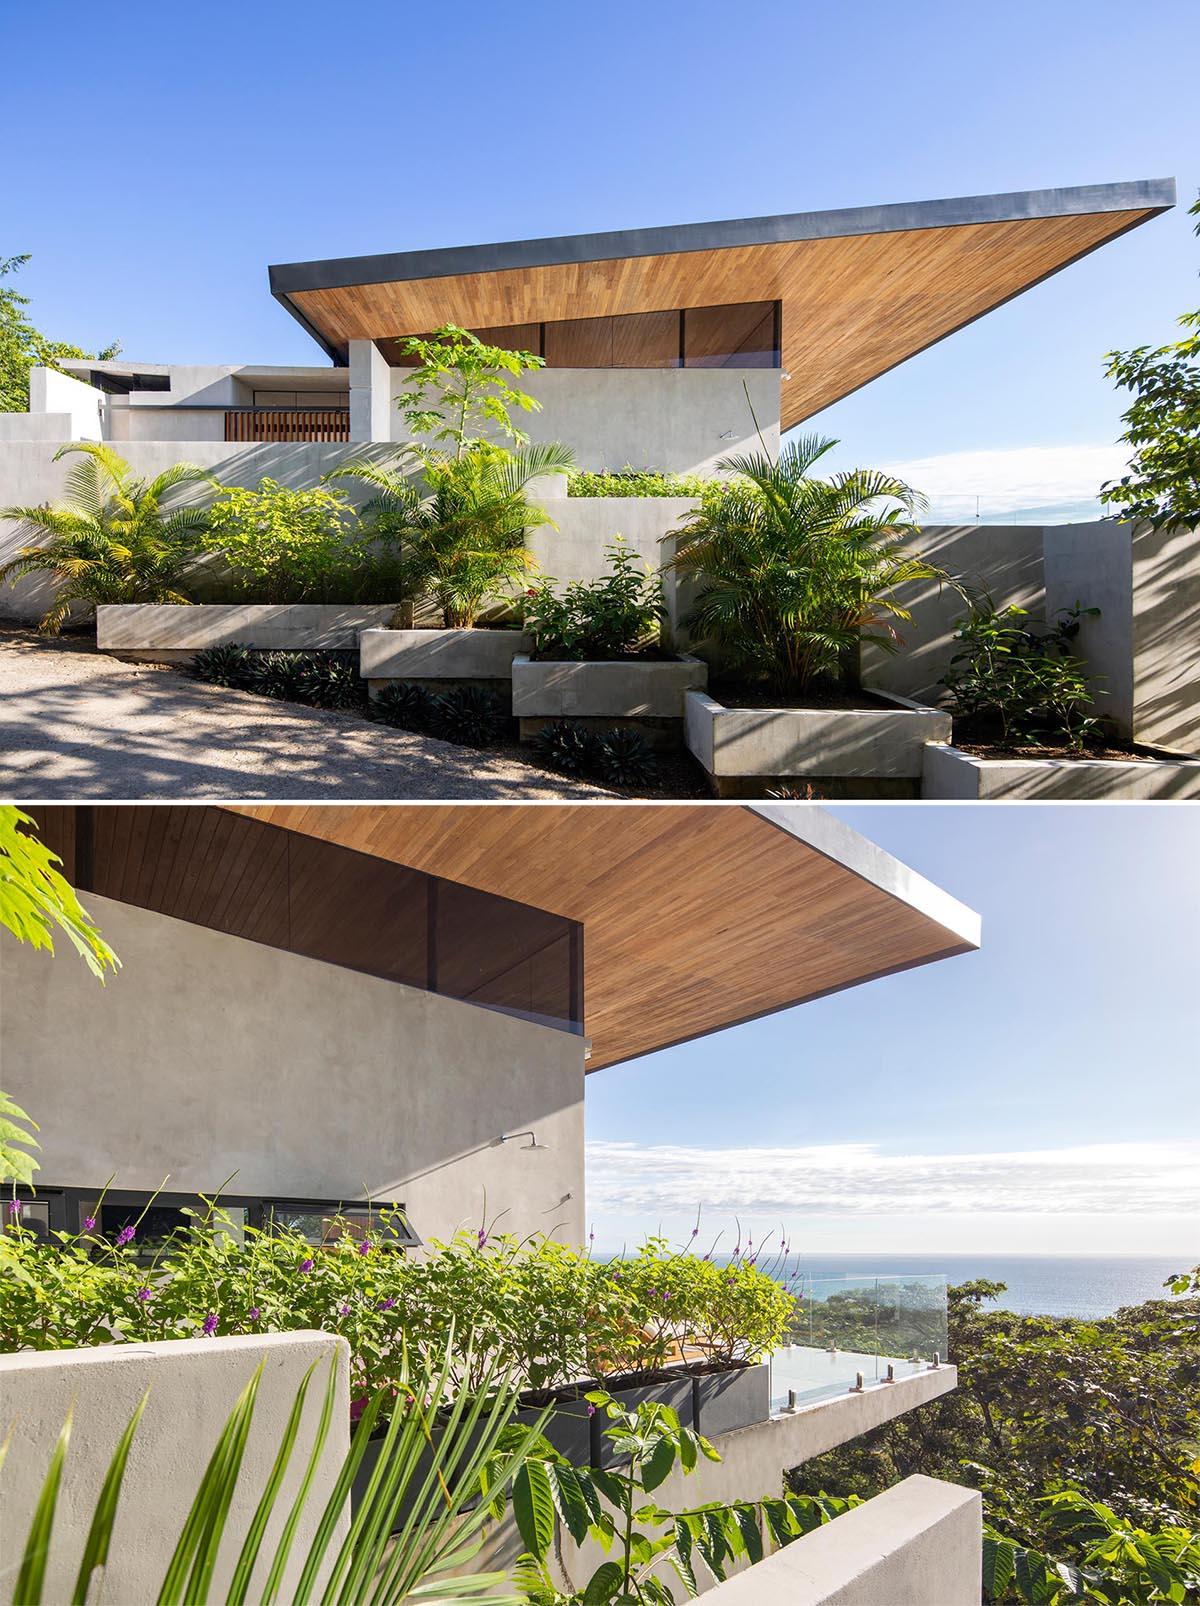 The sweeping and expansive angled roof, which is lined with wood, allows for cross ventilation during the rainy and humid months.